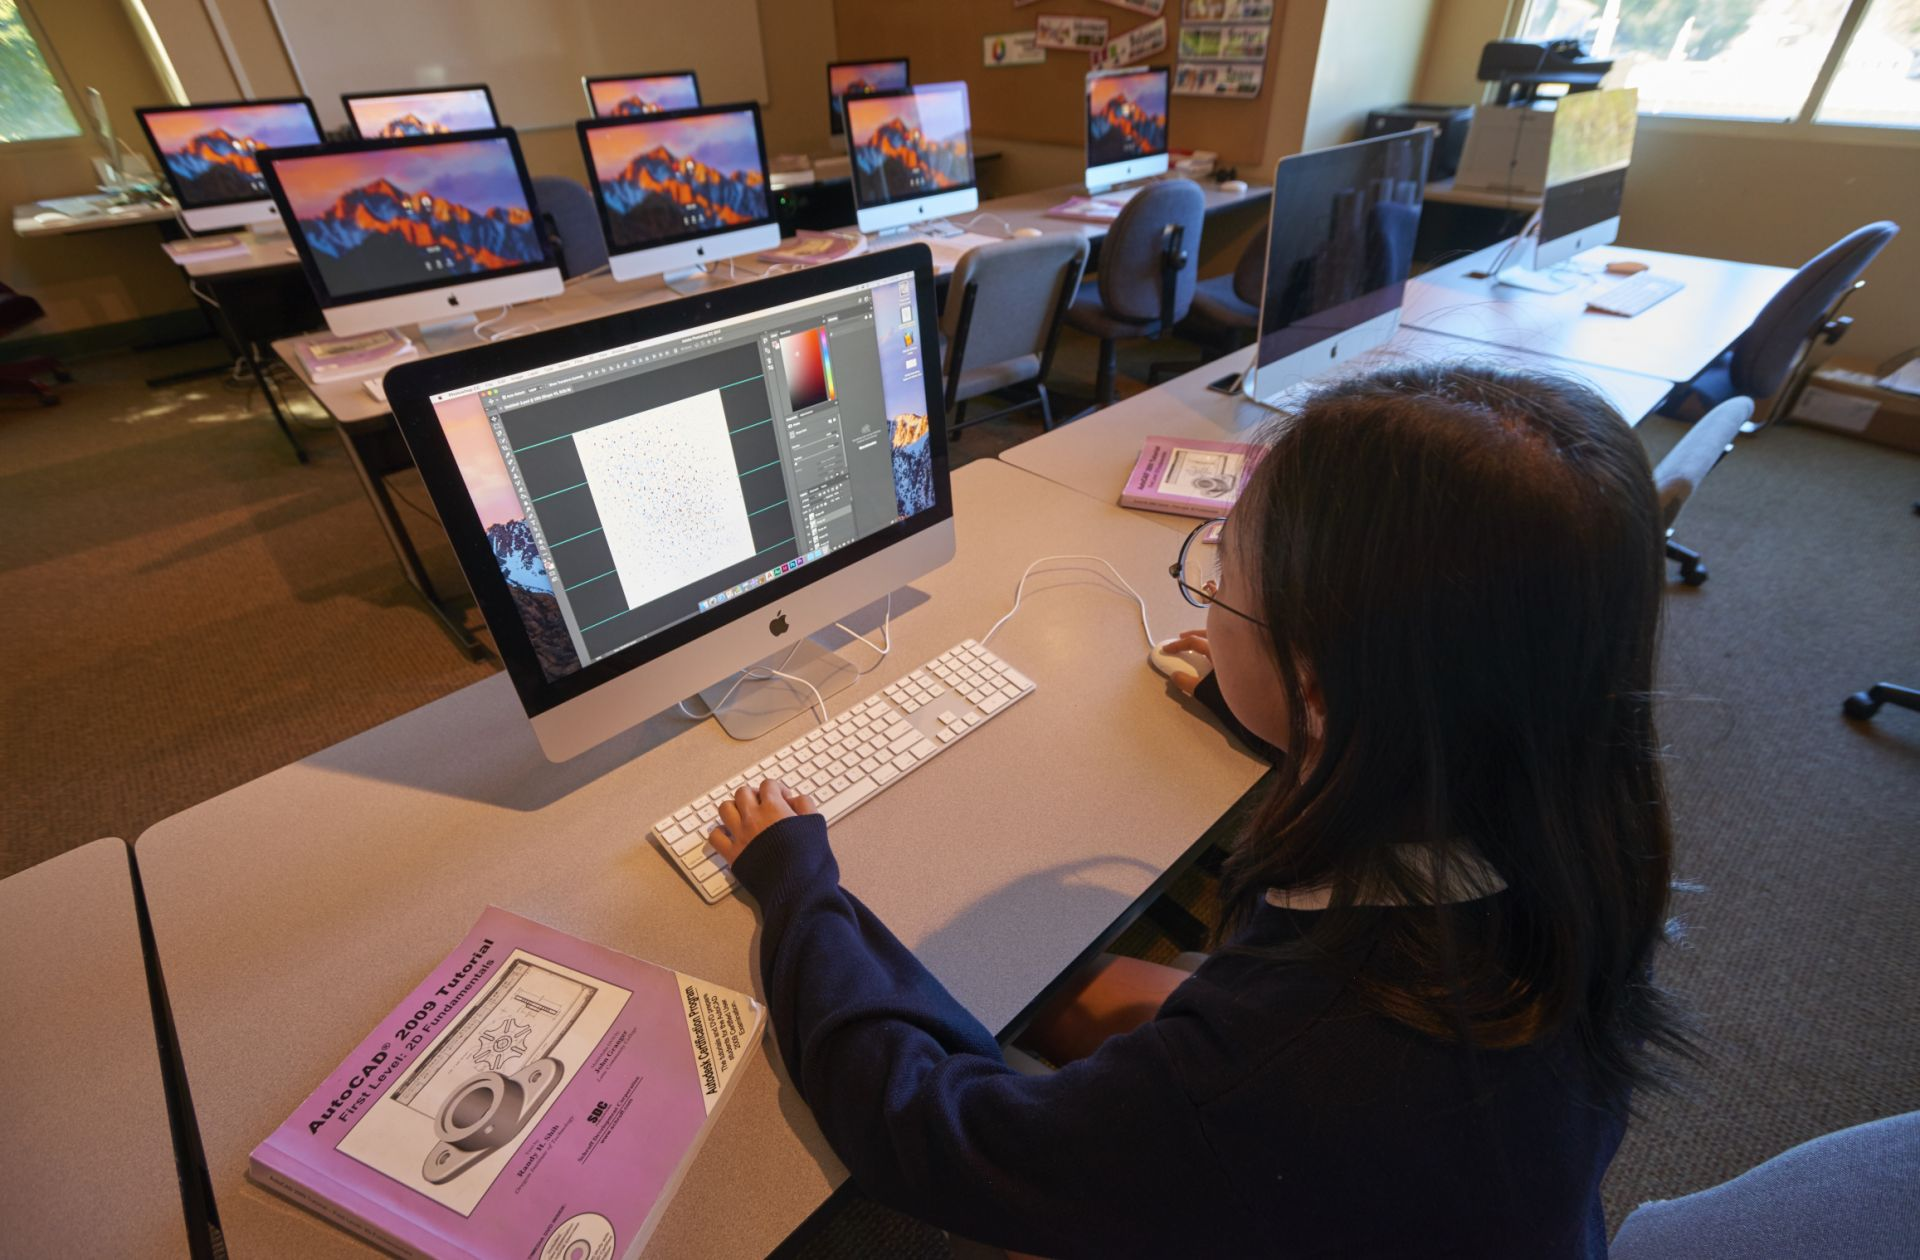 Our lab is full of iMacs and provides space for video, graphic design, and photography classes.